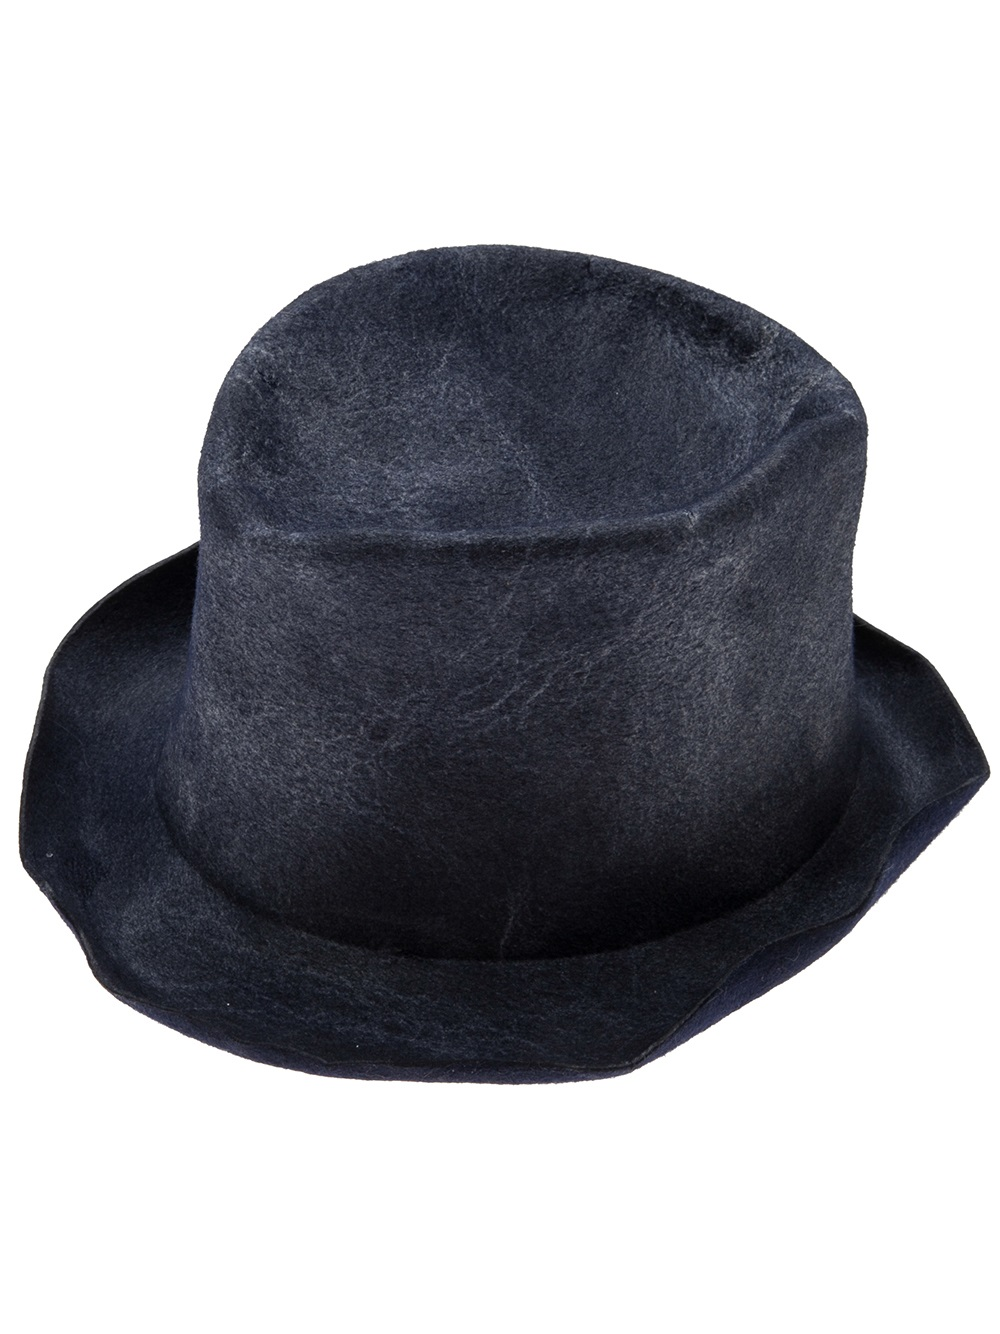 635d0a20f7c Lyst - Reinhard Plank Doc Hat in Blue for Men